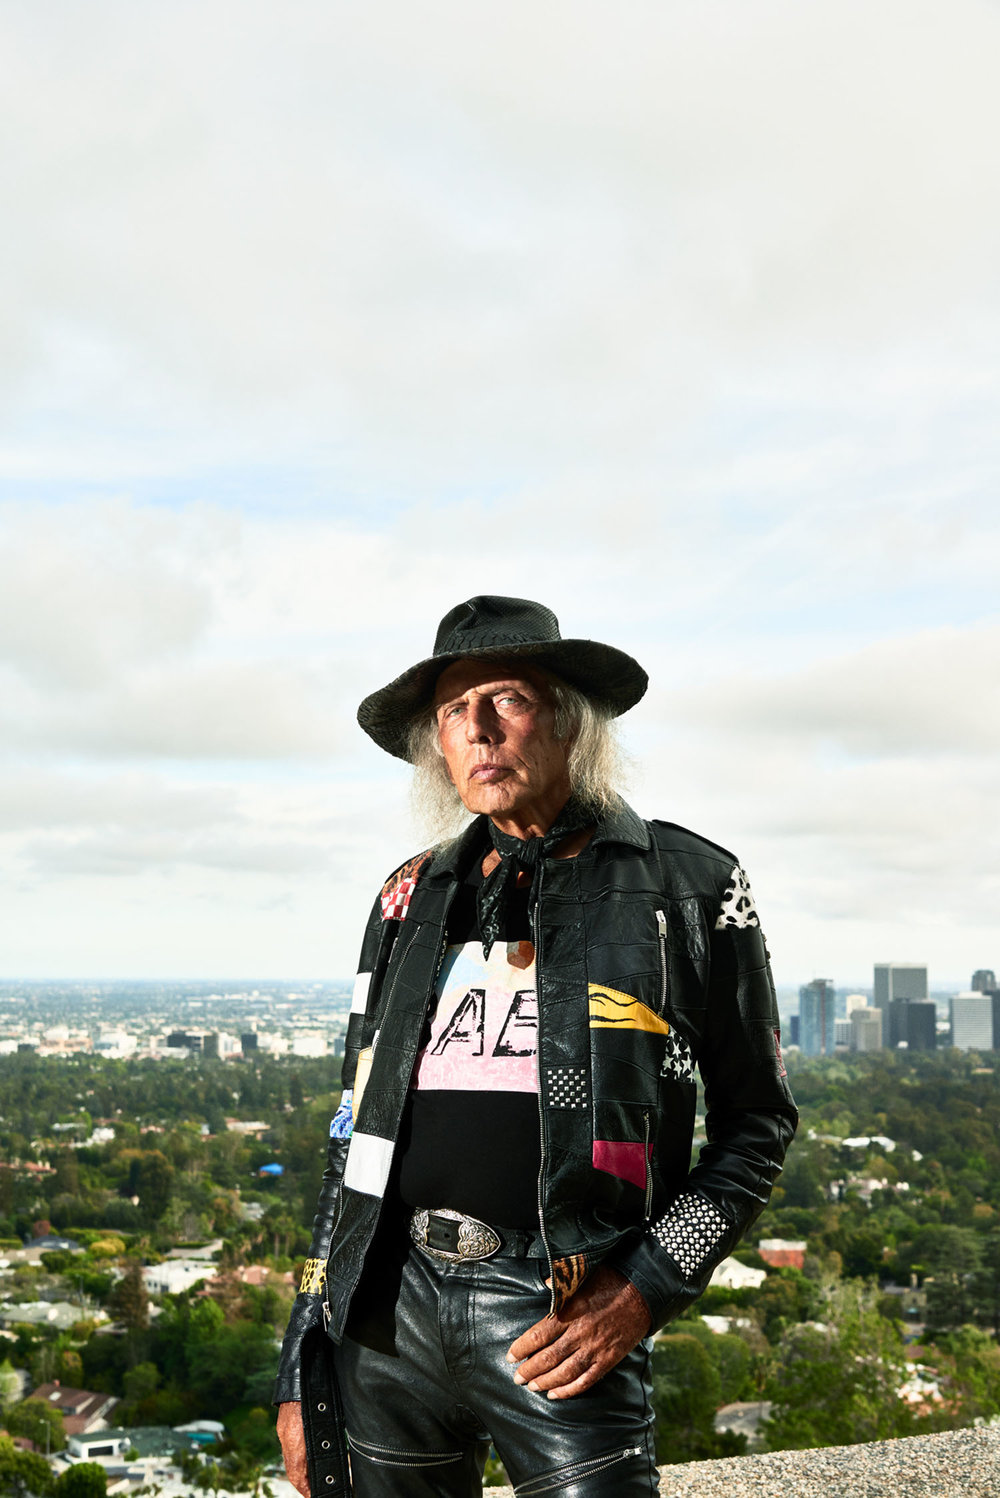 James Goldstein, Businessperson, Los Angeles, California, 2016